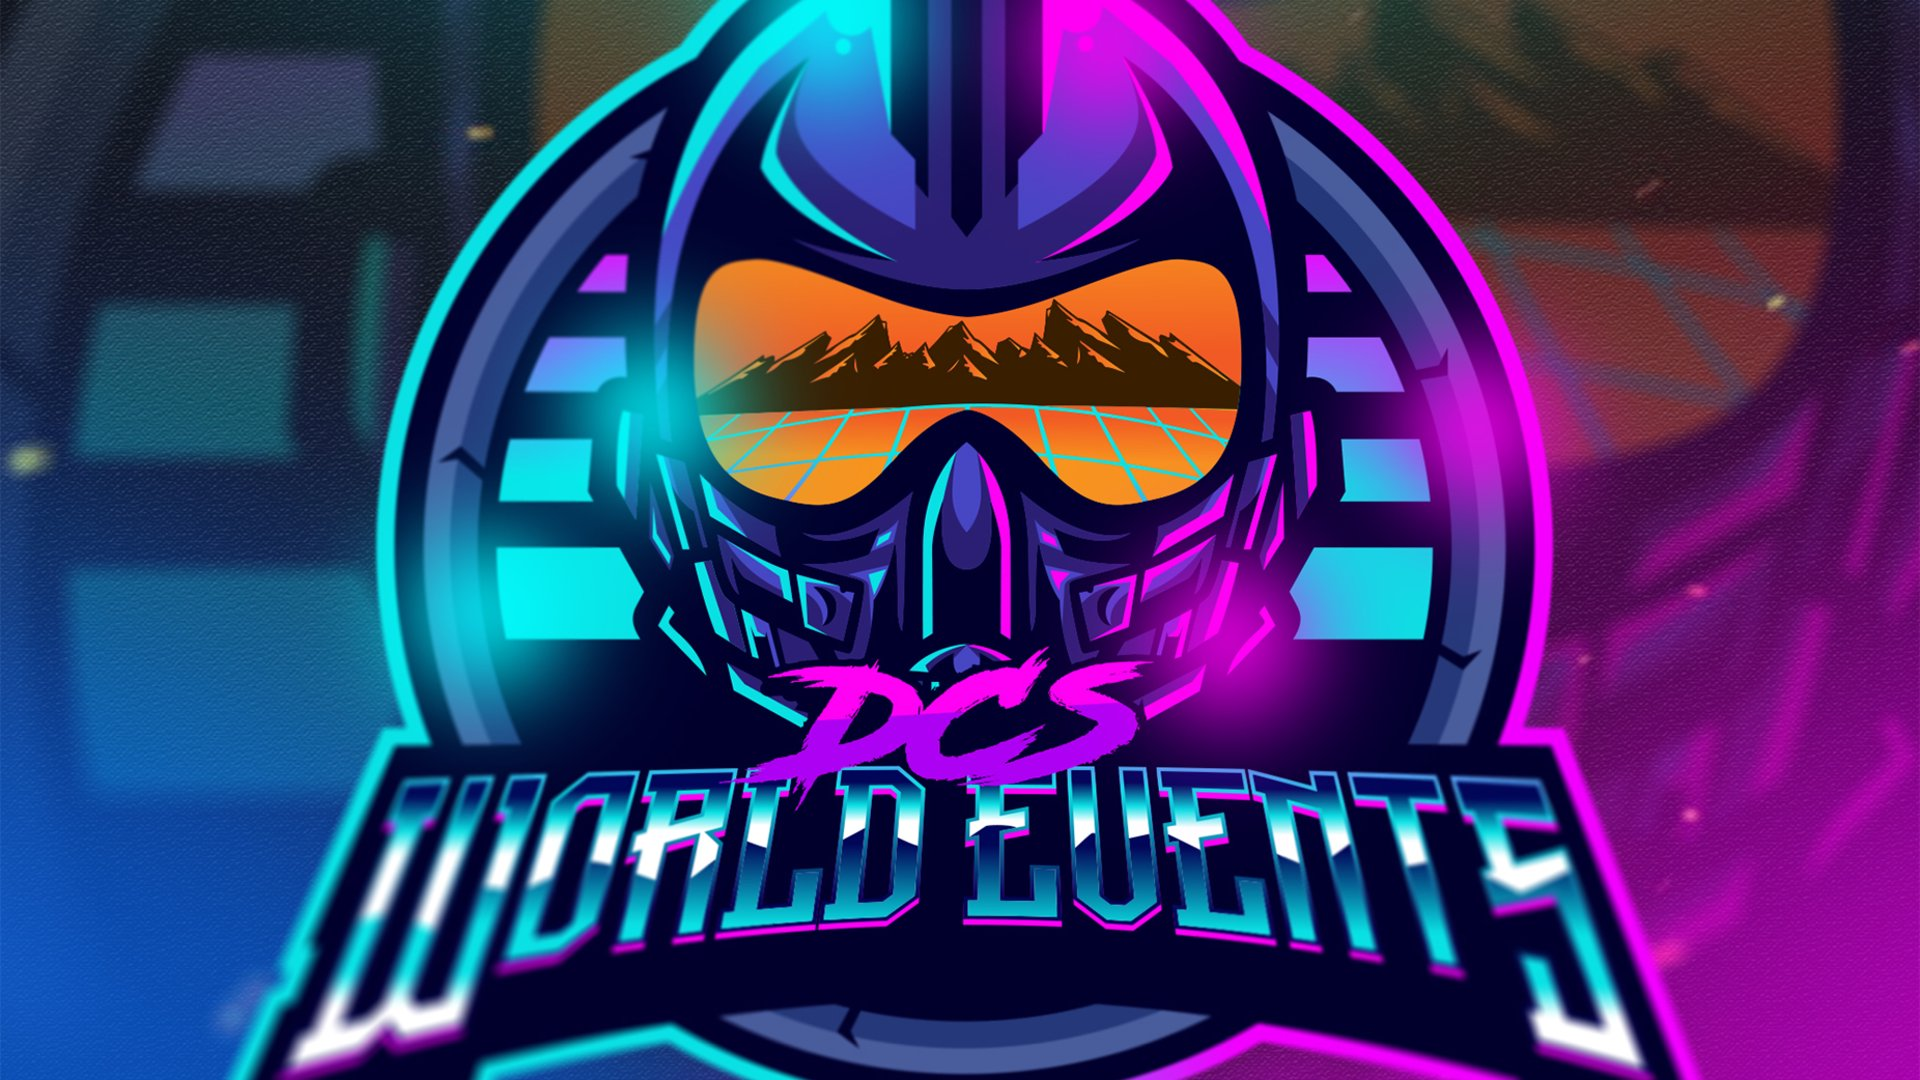 Twitch stream of DCSWorldEvents